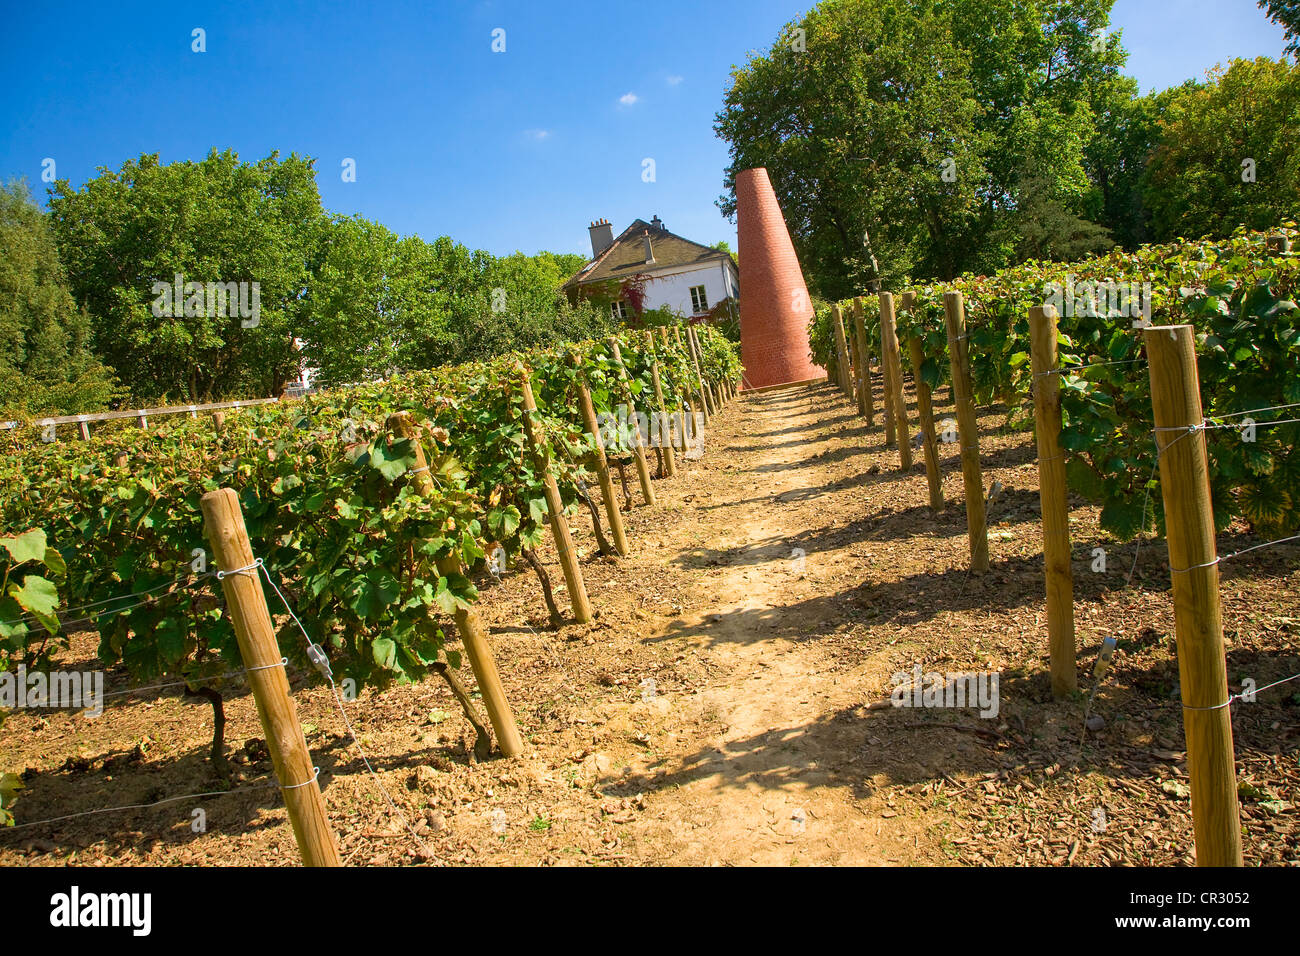 France, Paris, vineyards in the Bercy Park - Stock Image